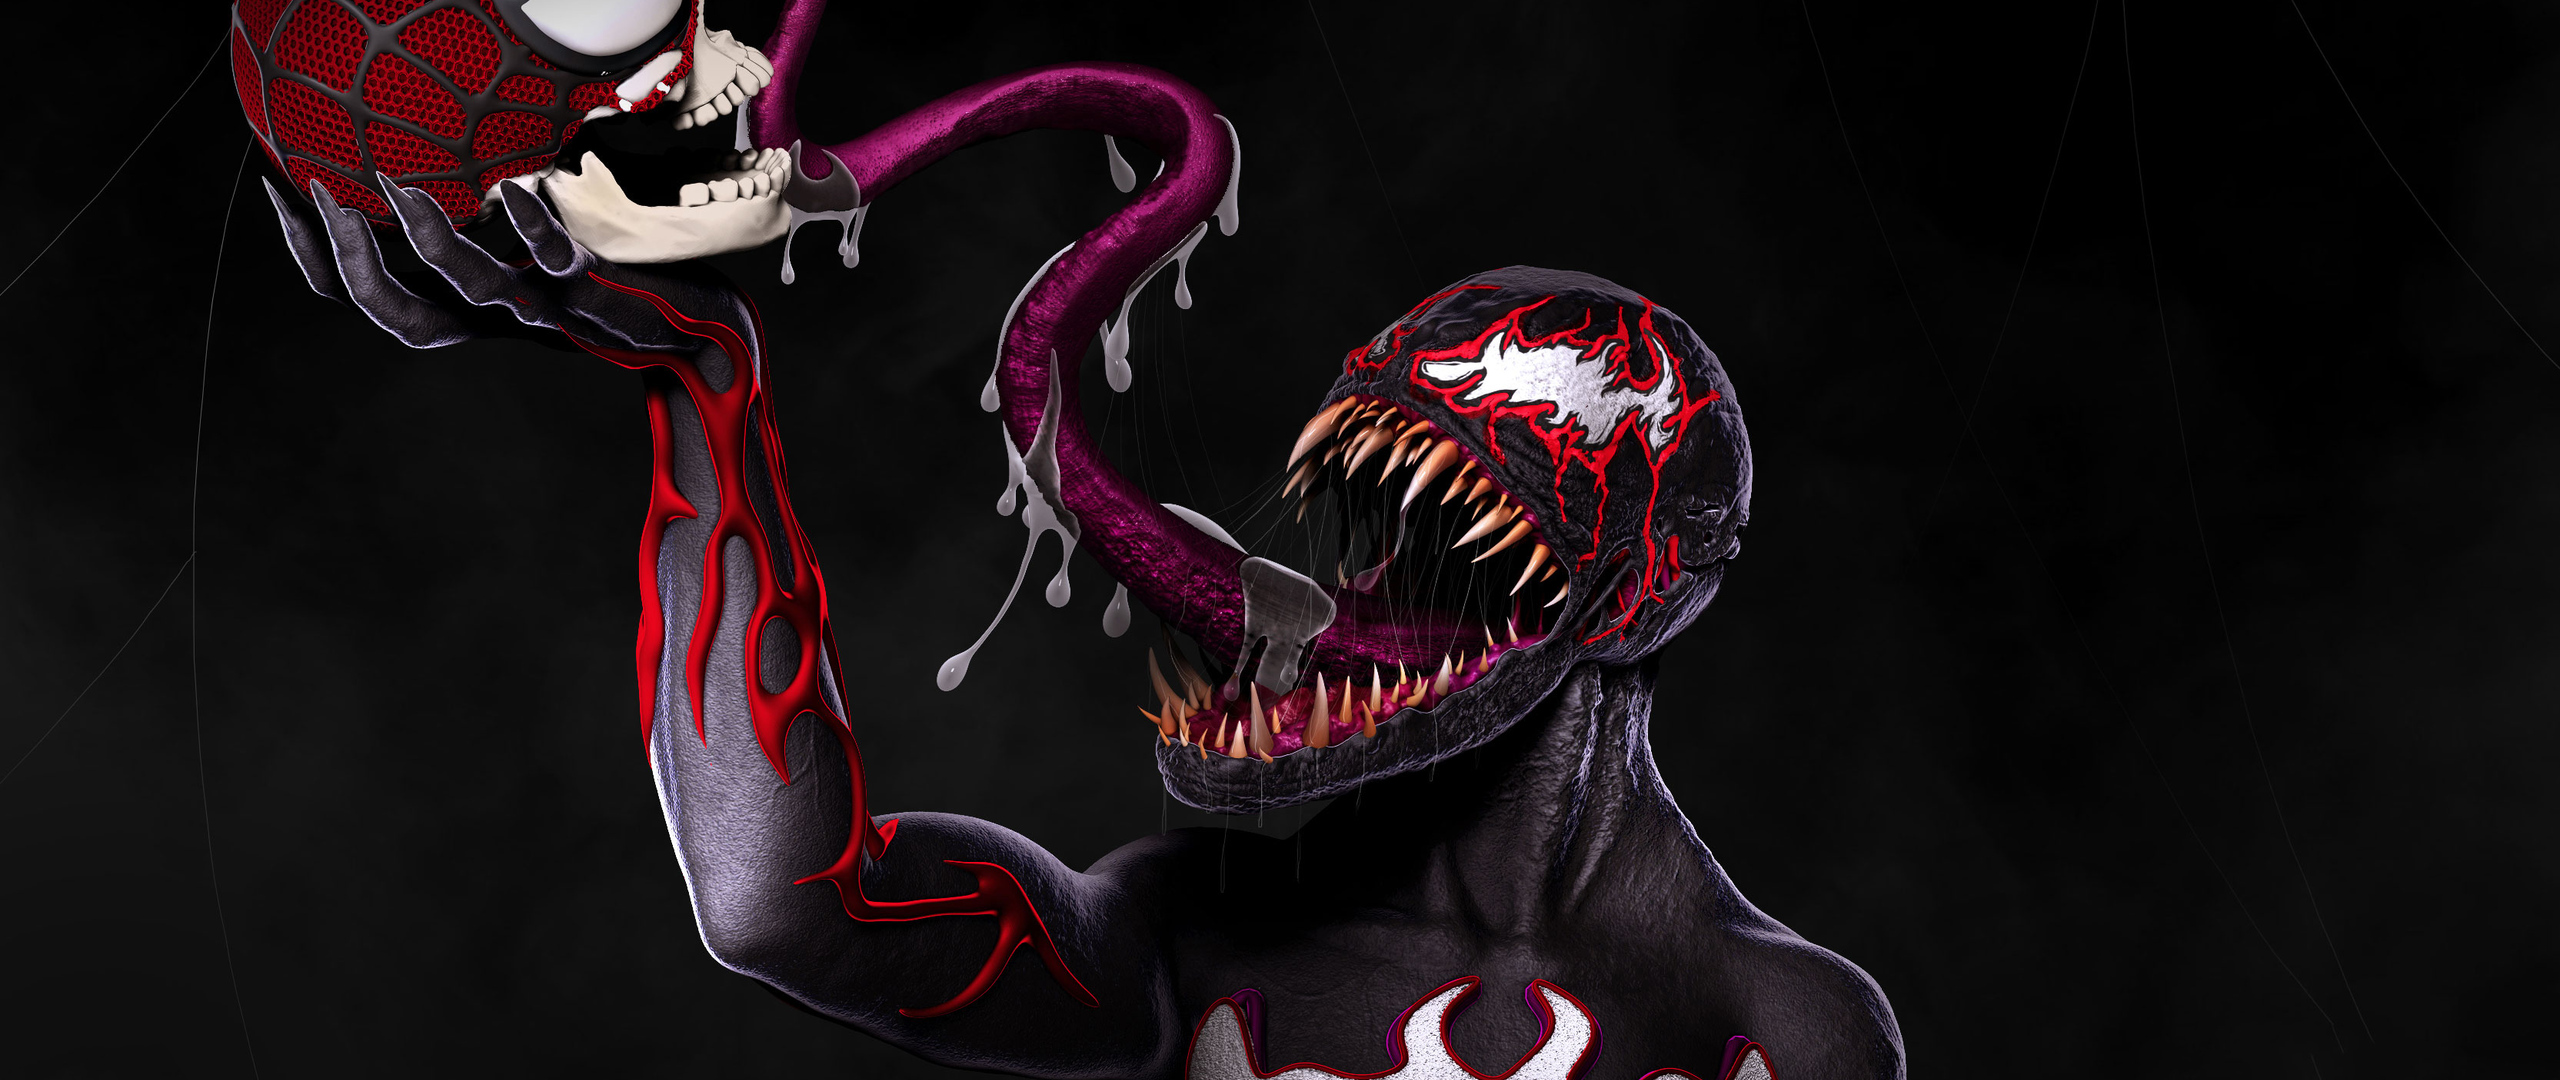 venom-cgi-artwork-8f.jpg